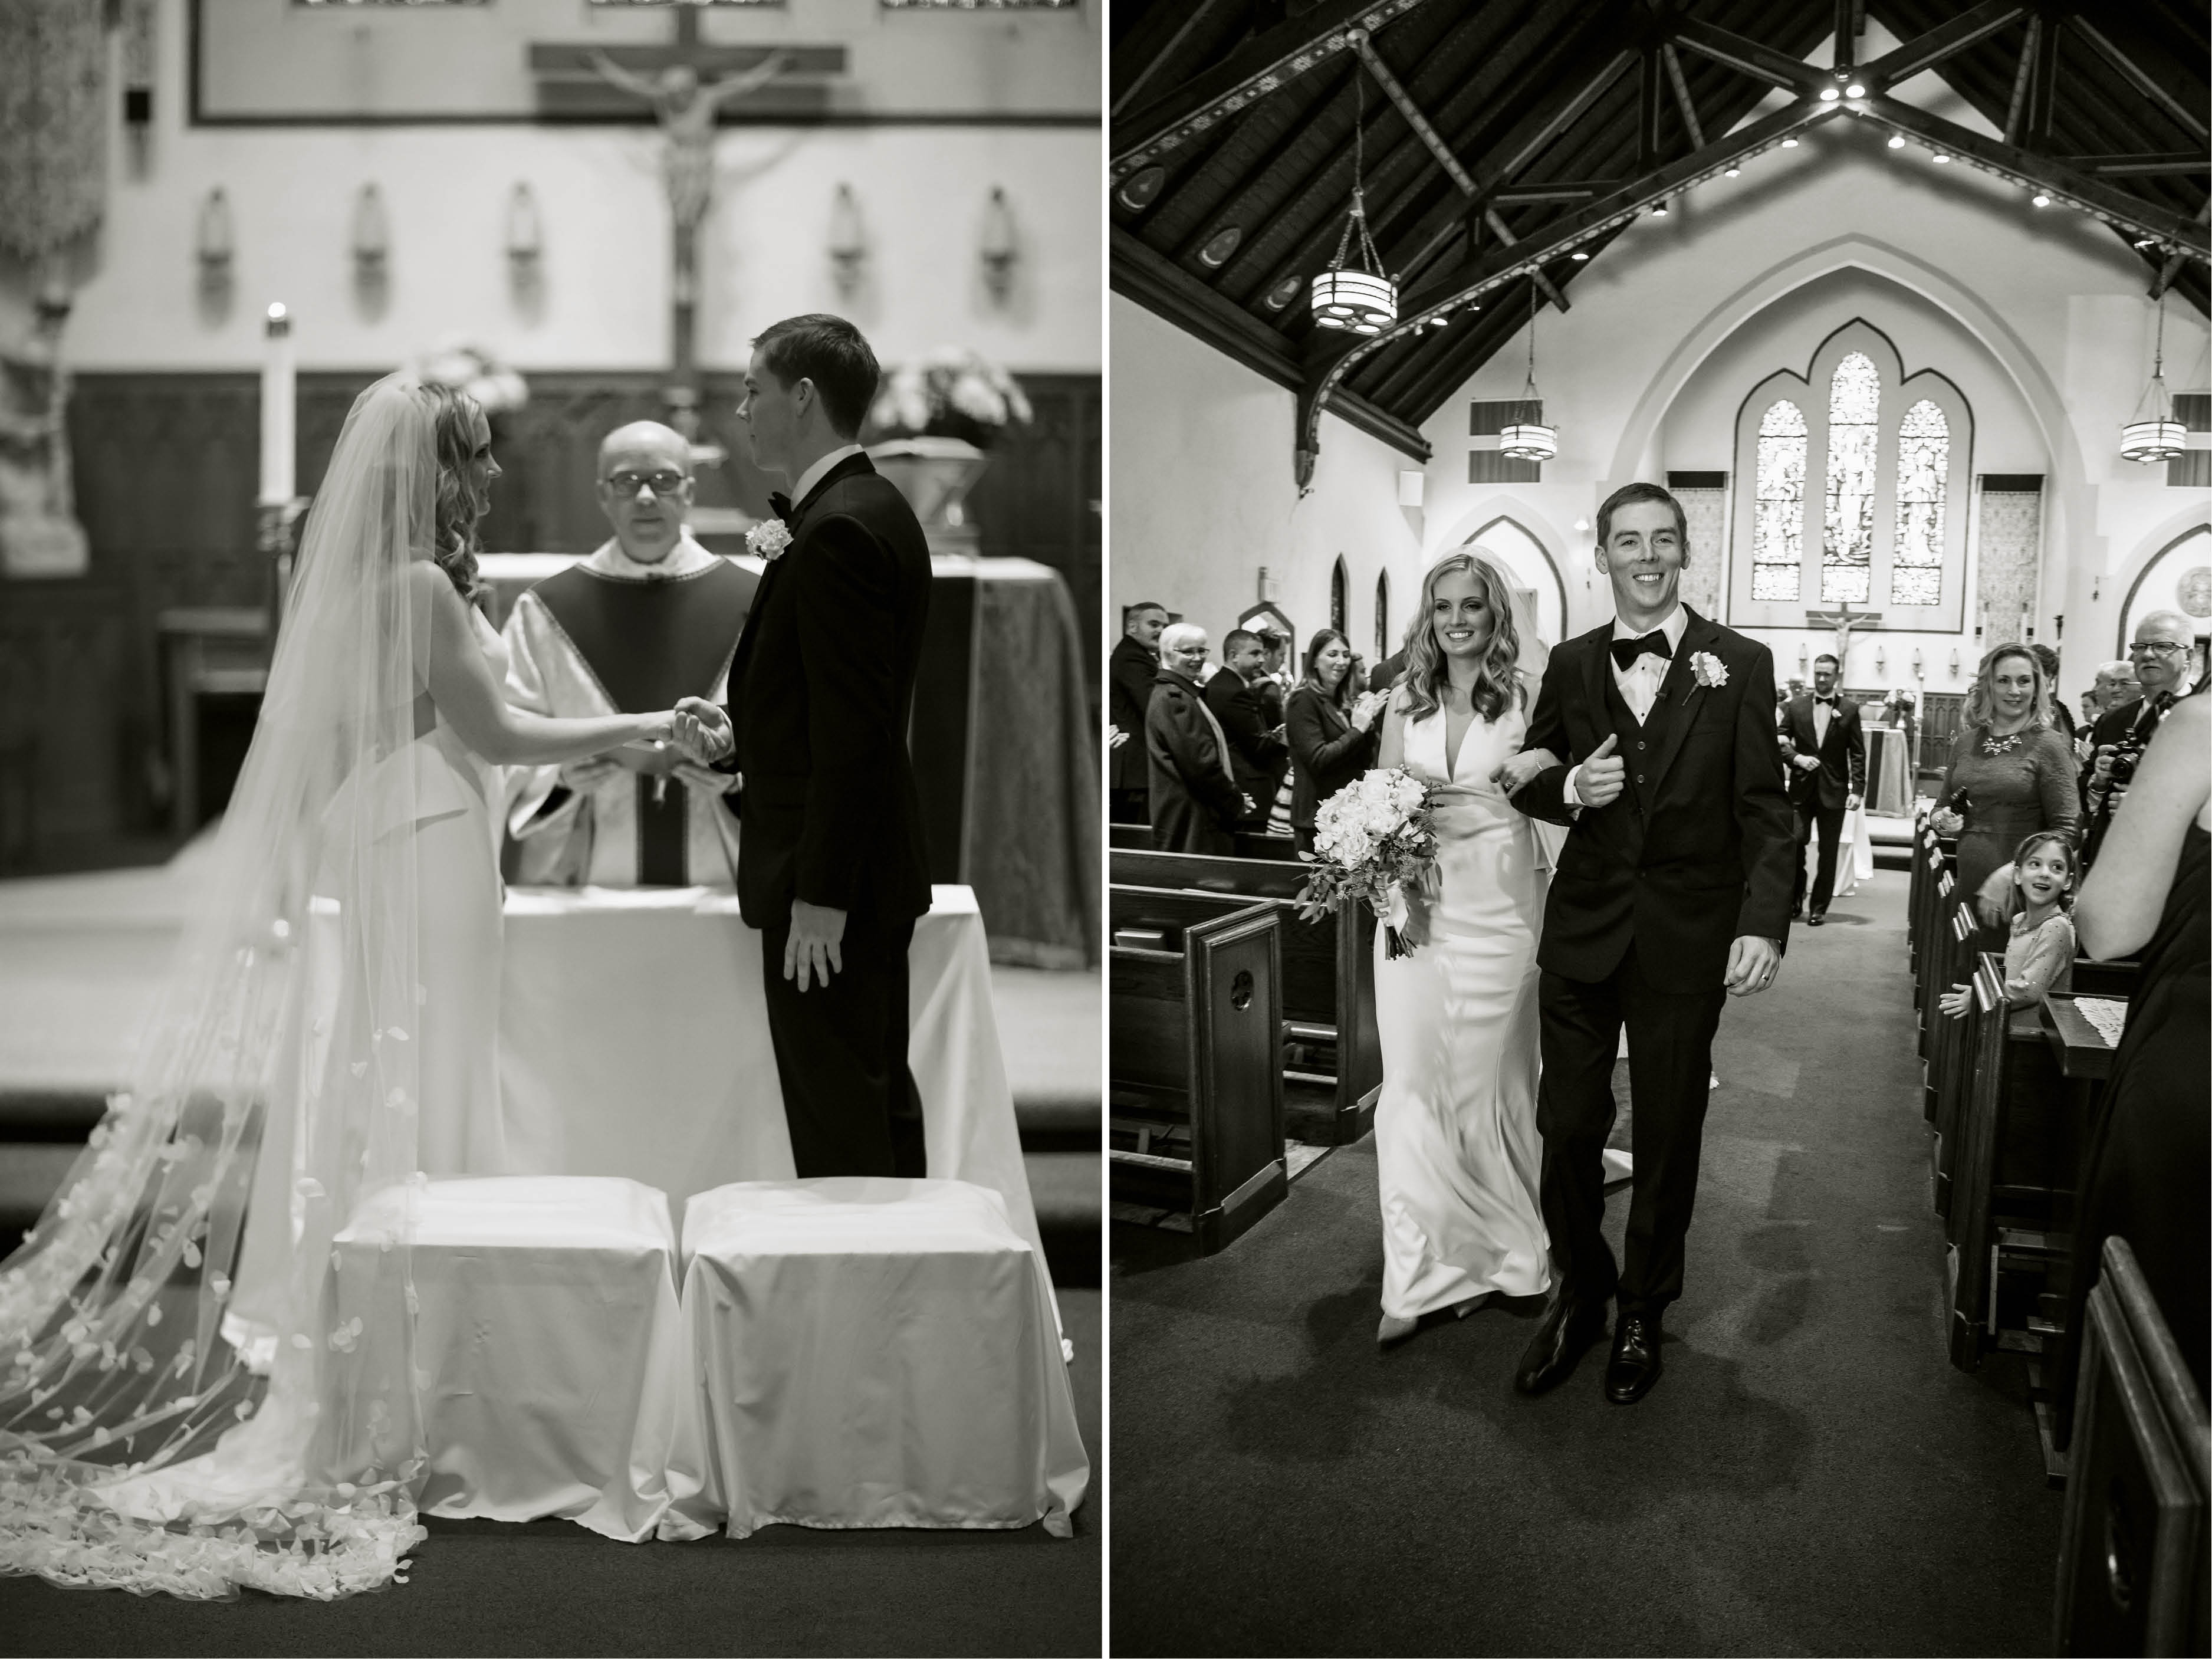 Emma_cleary_photography The Garrison NY wedding3